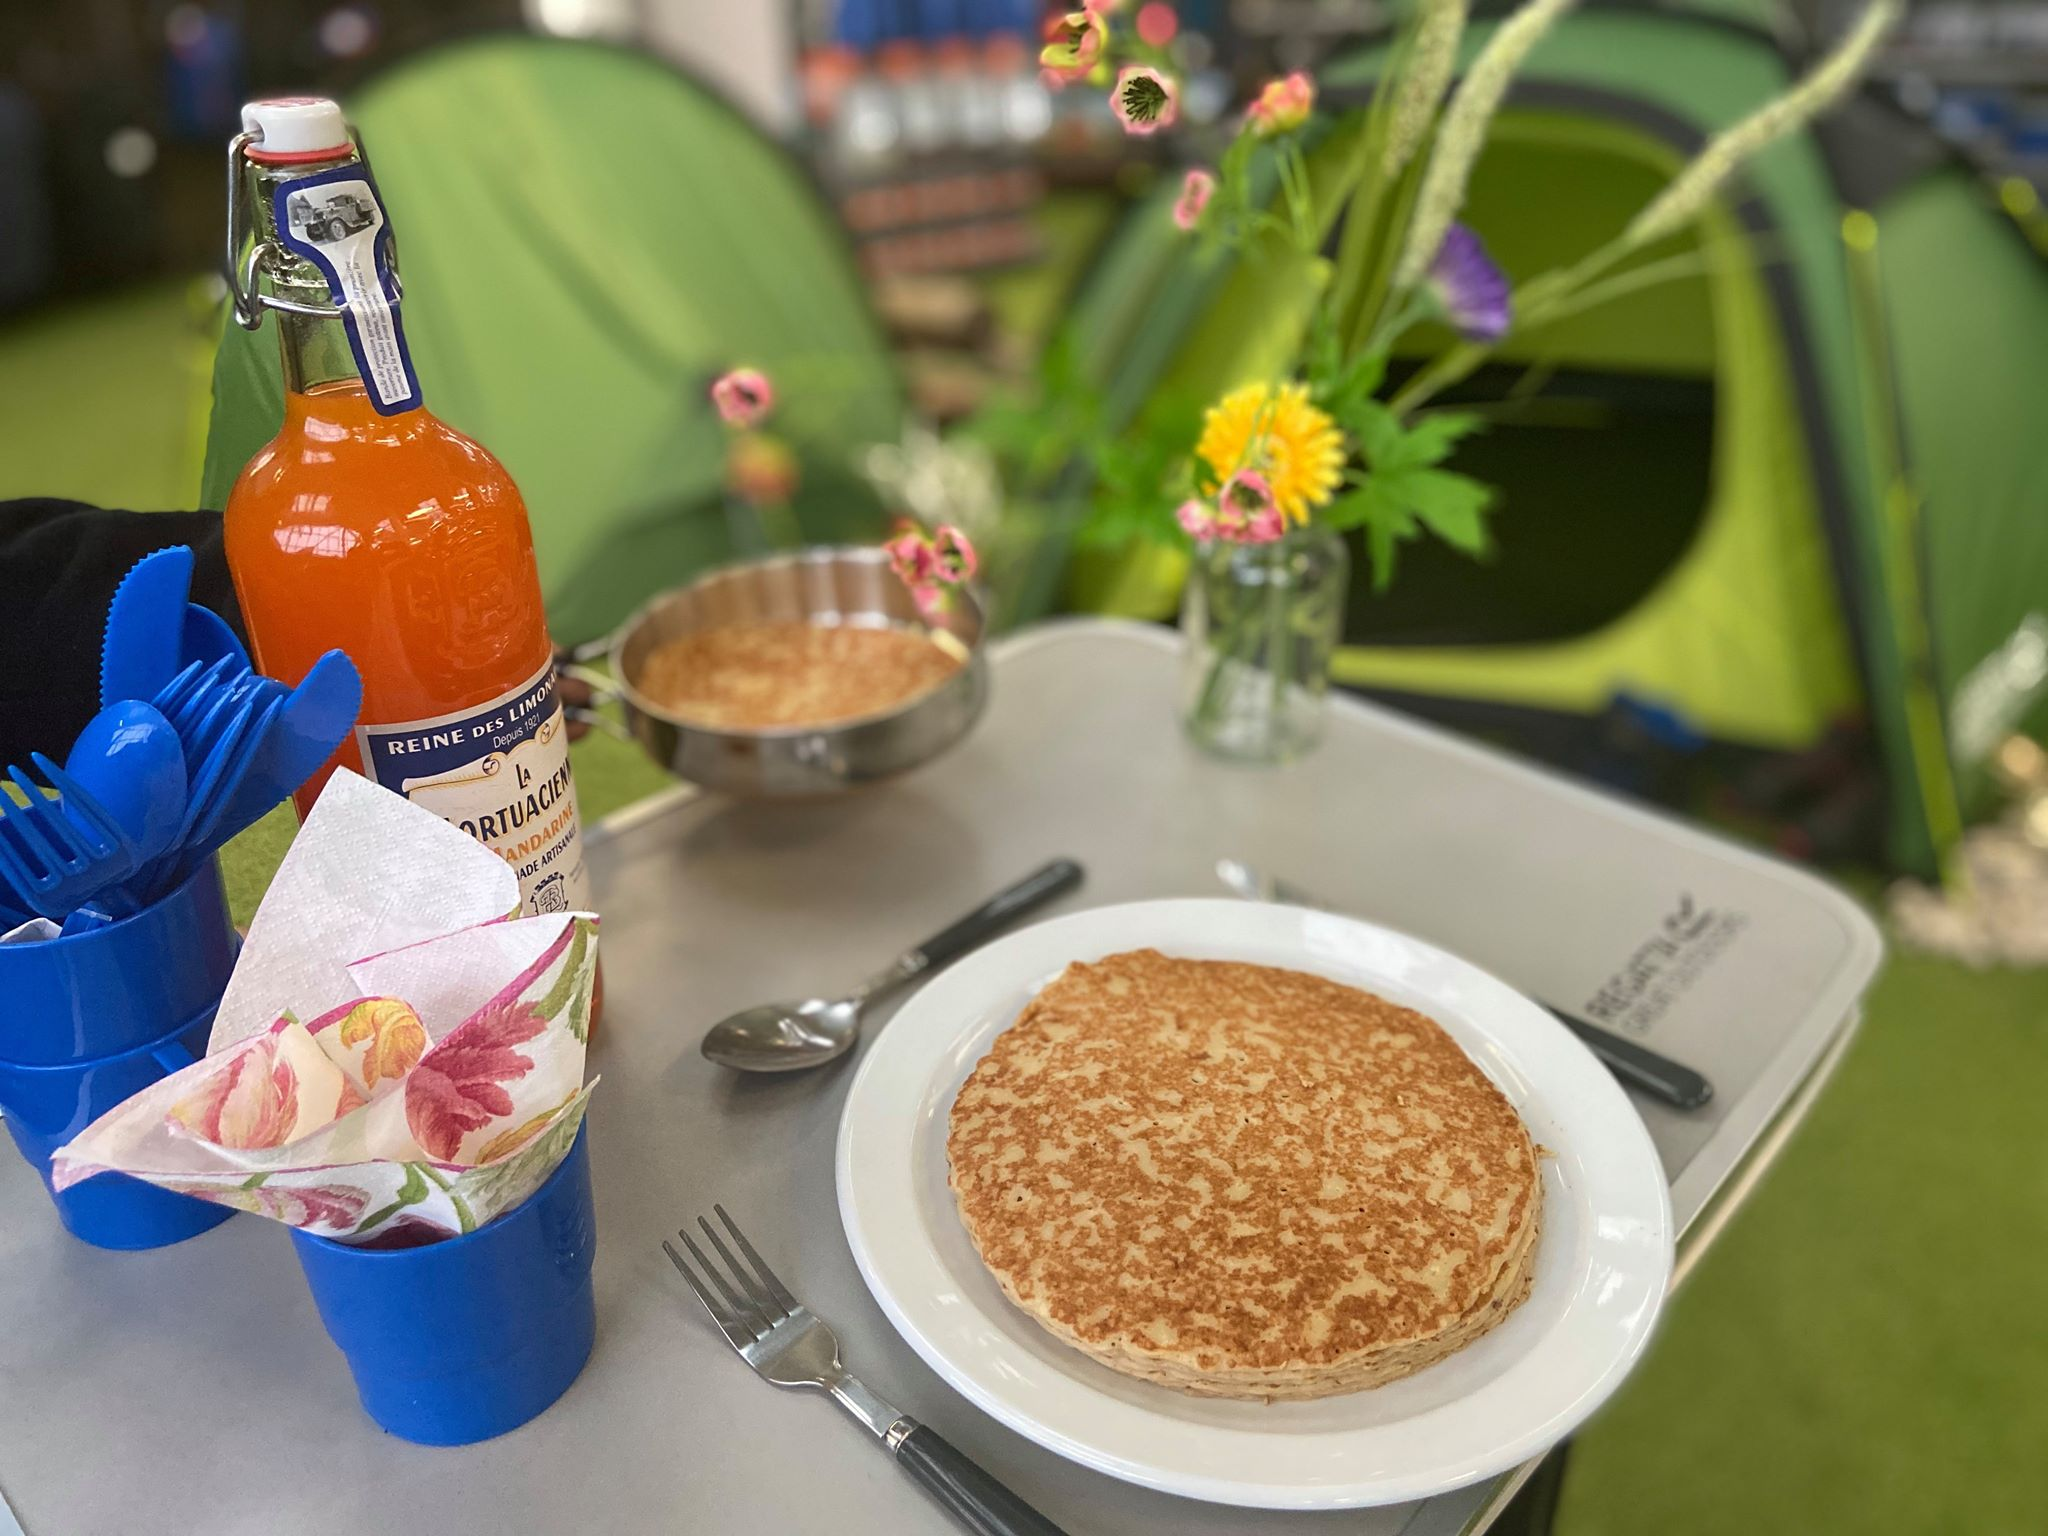 Stack of pancakes at breakfast table outside.